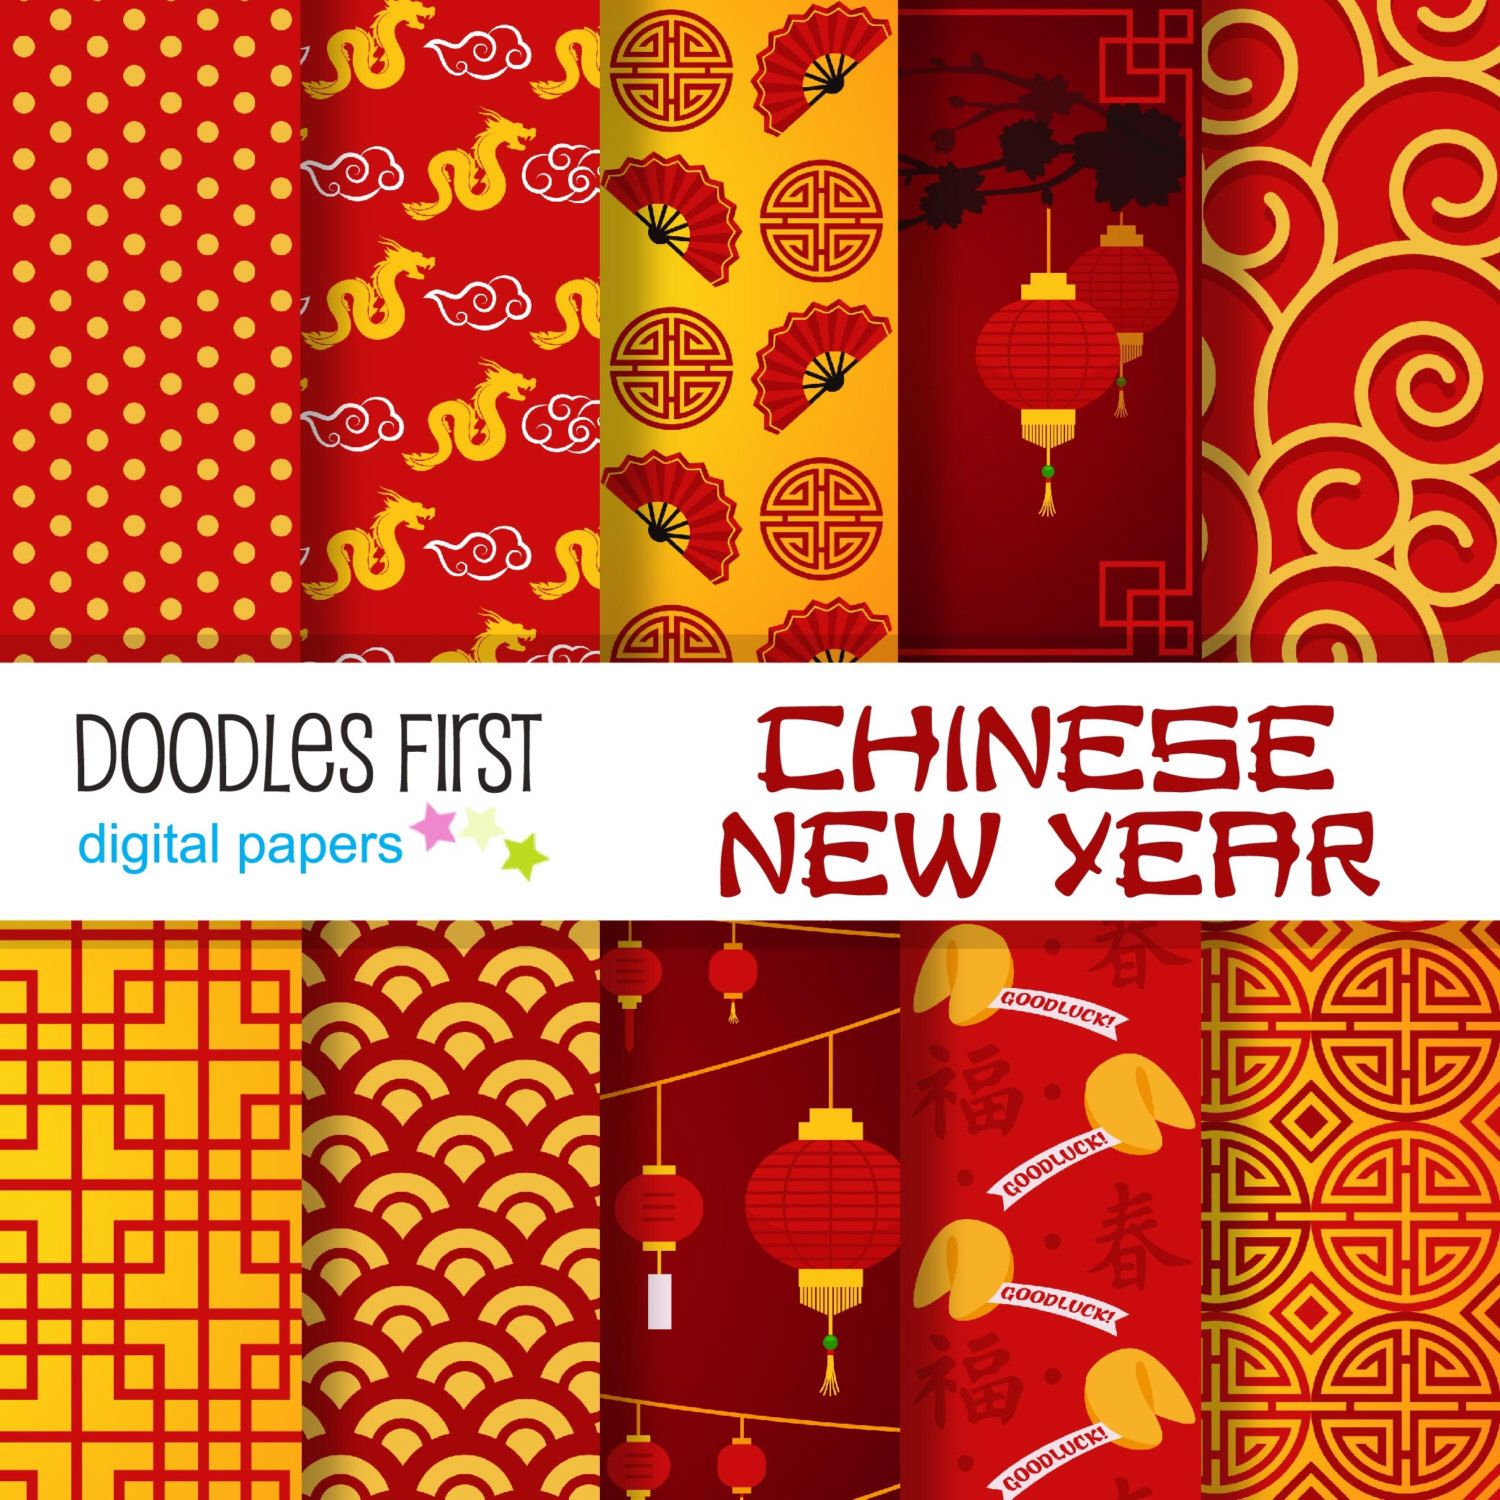 Scrapbook paper etsy - Chinese New Year Digital Paper Pack Includes 10 For Scrapbooking Paper Crafts By Doodlesfirst On Etsy